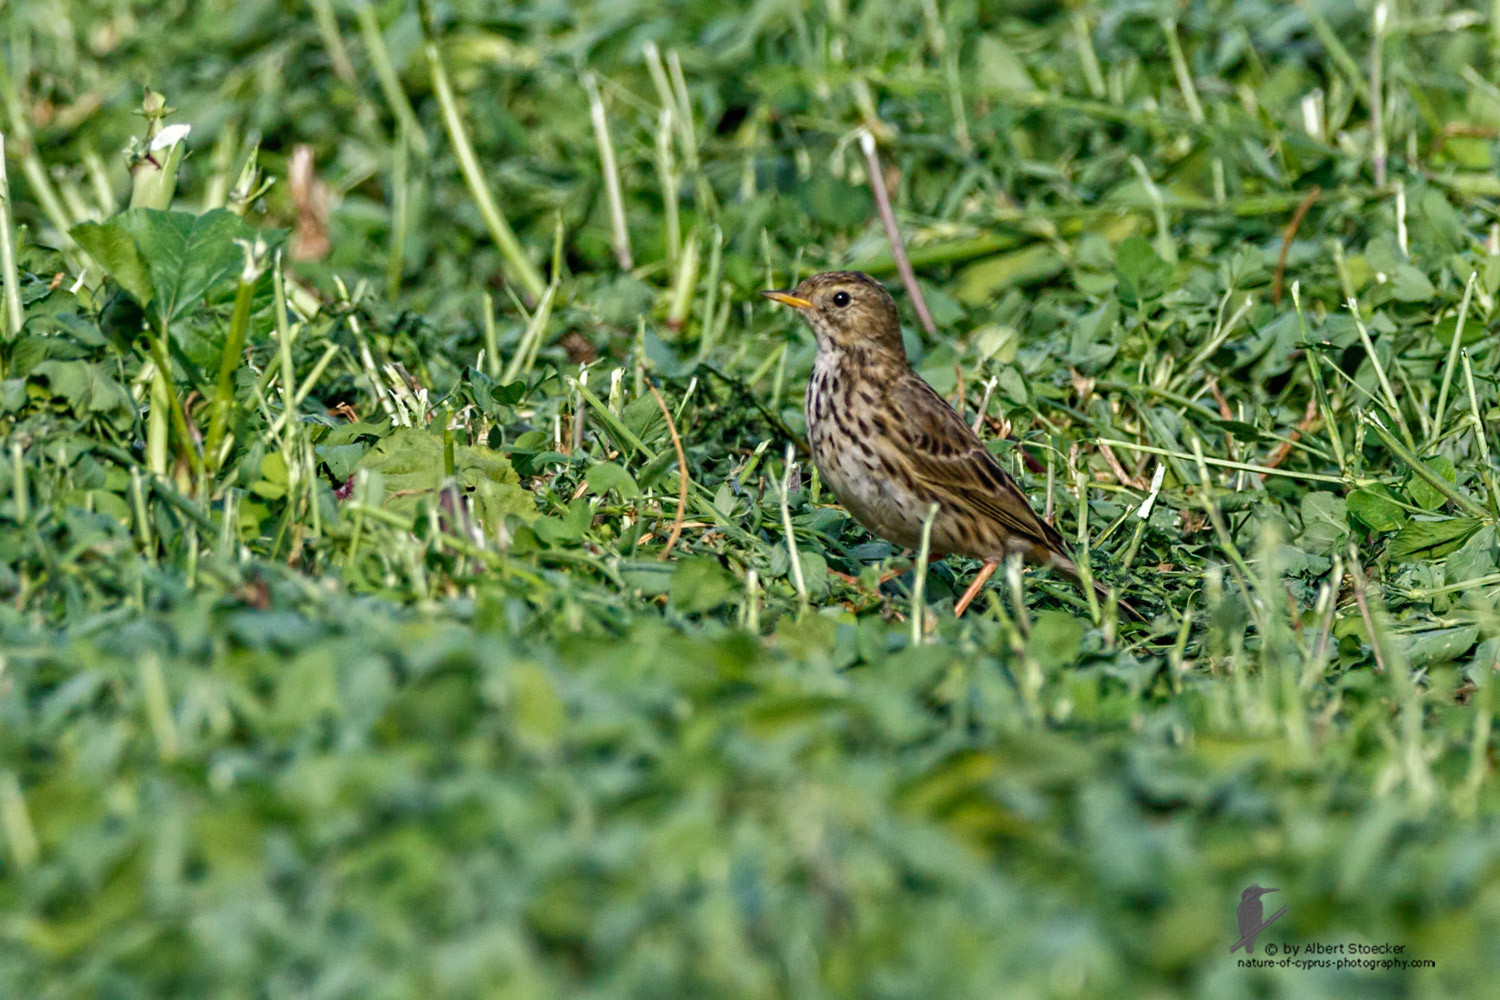 Anthus pratensis - Meadow pipit - Wiesenpiper, Cyprus, Mandria, March 2016